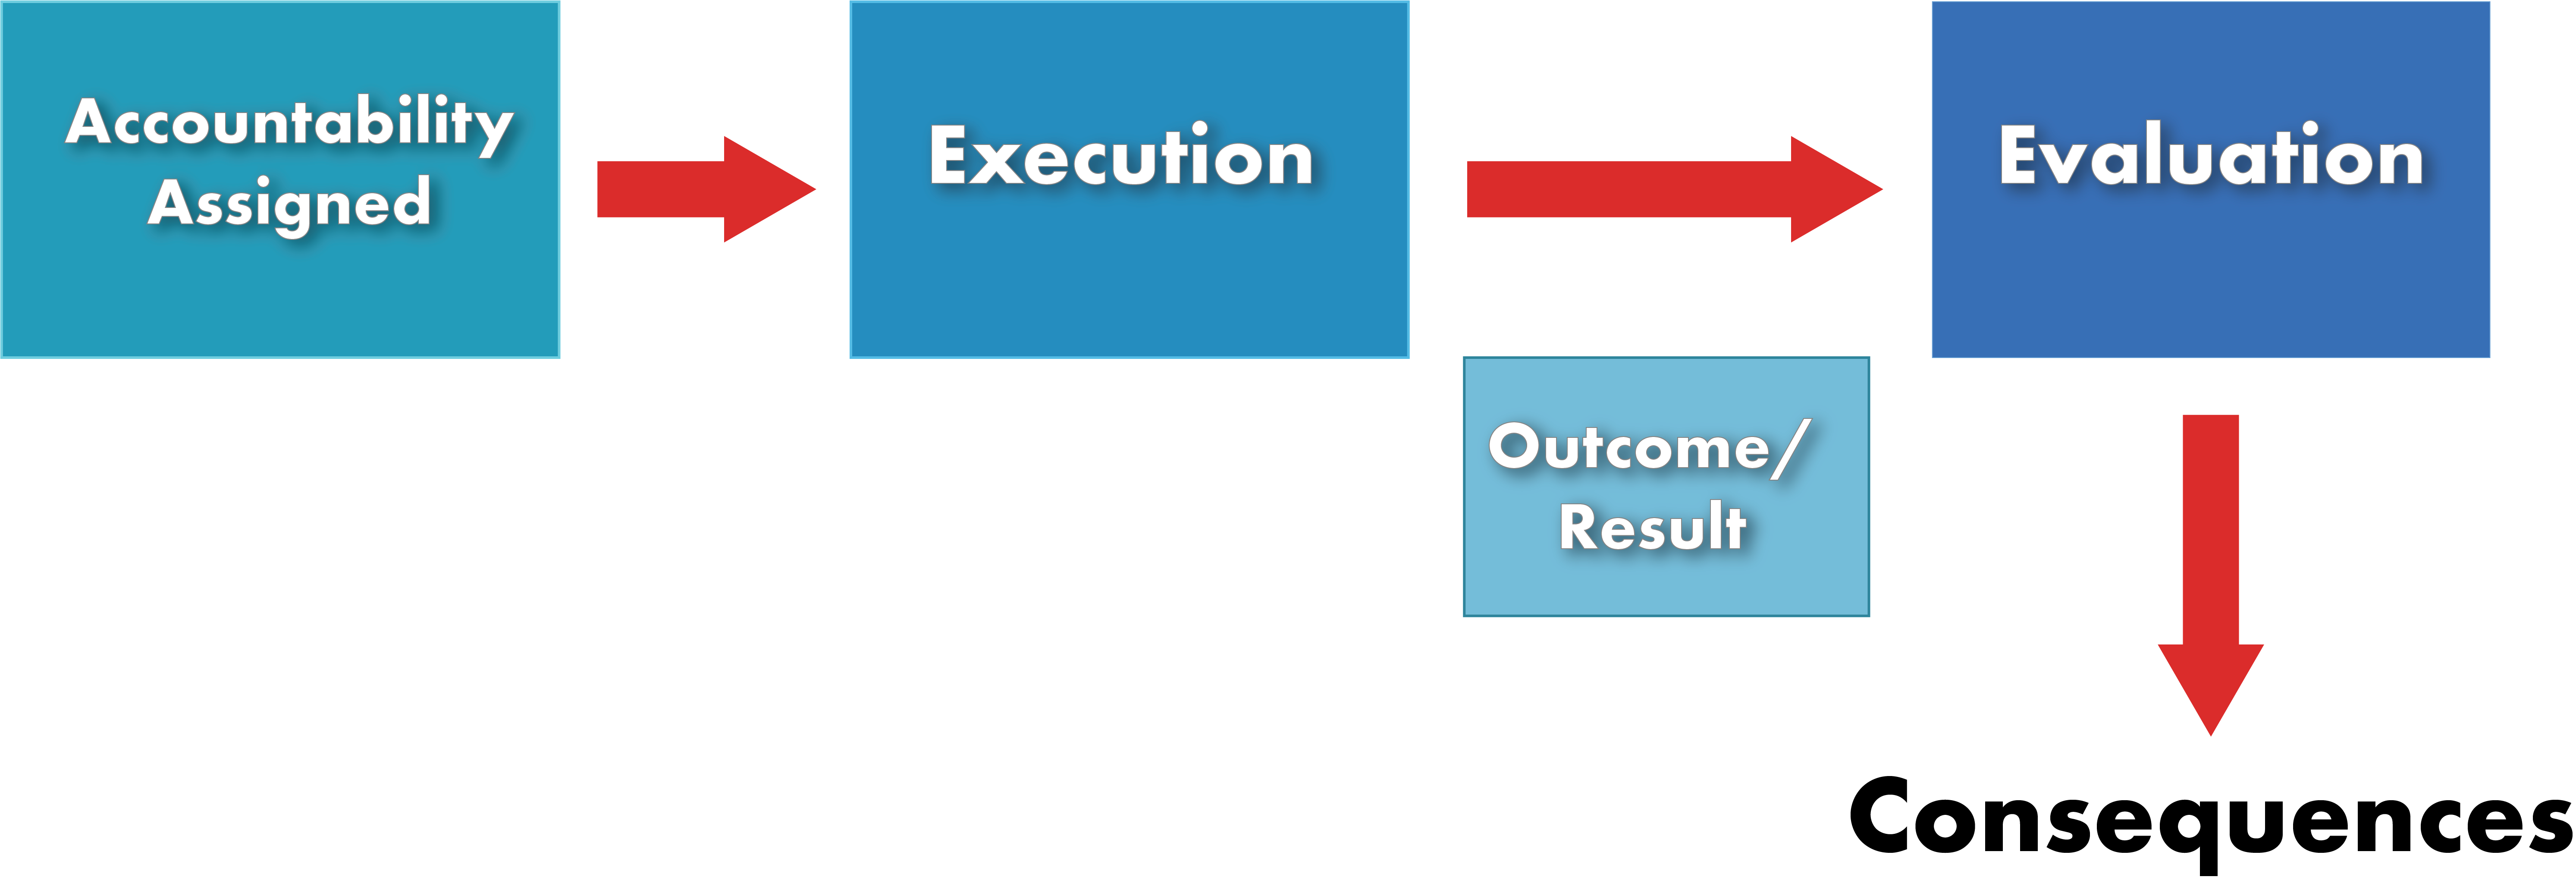 execution stage